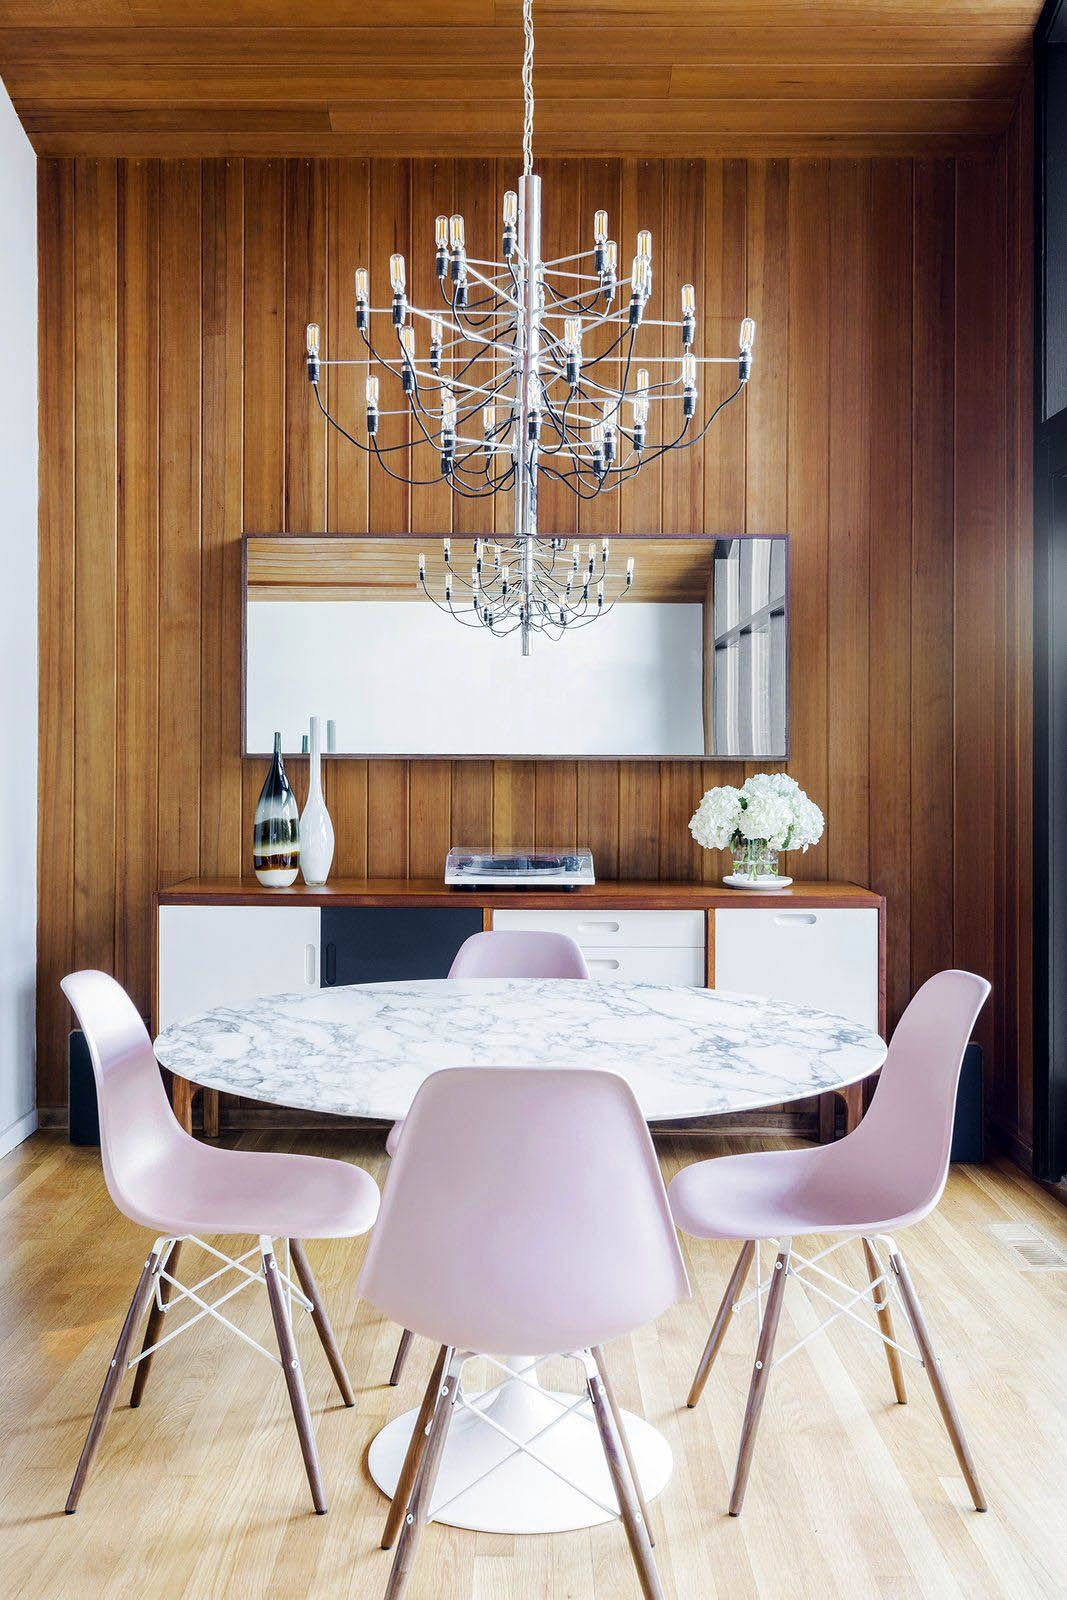 The Best And Easiest Dining Room Chairs That Support 300 Pounds To